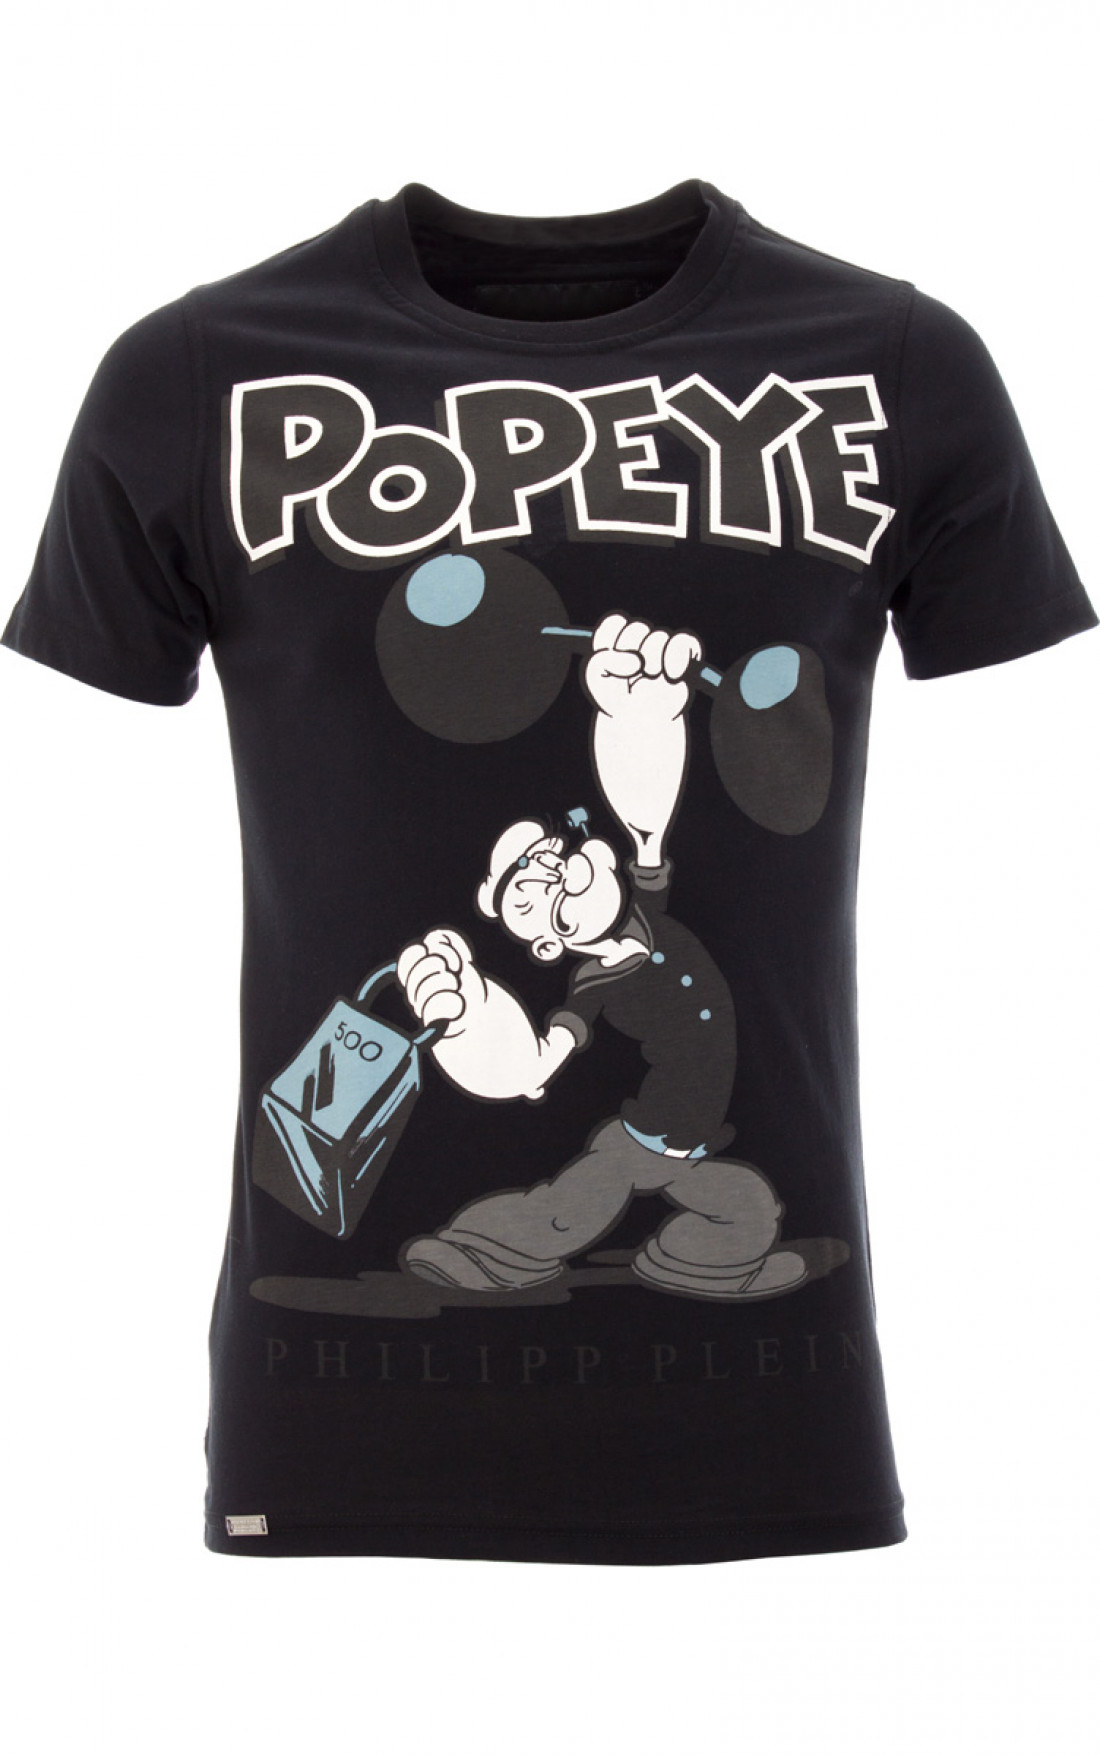 philipp plein 39 popeye 39 t shirt black boudi uk. Black Bedroom Furniture Sets. Home Design Ideas